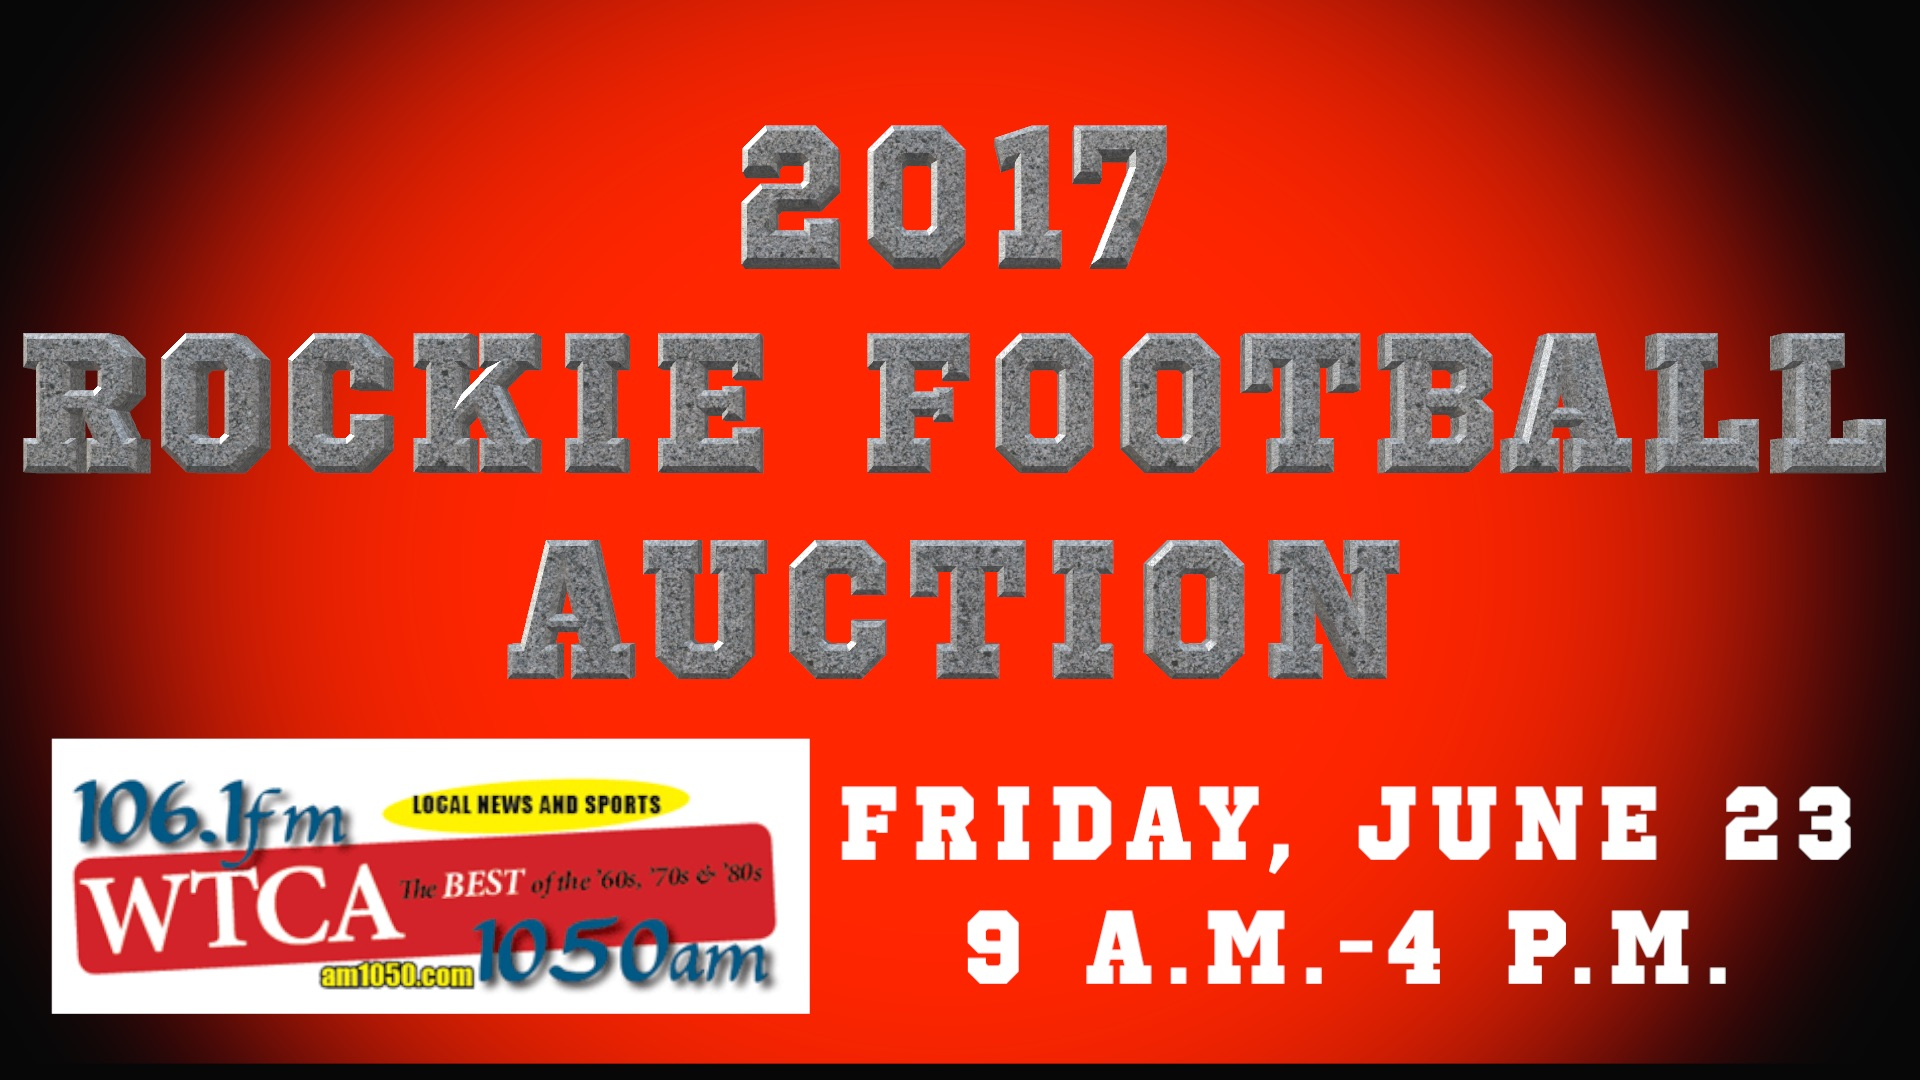 Rockies Football Auction